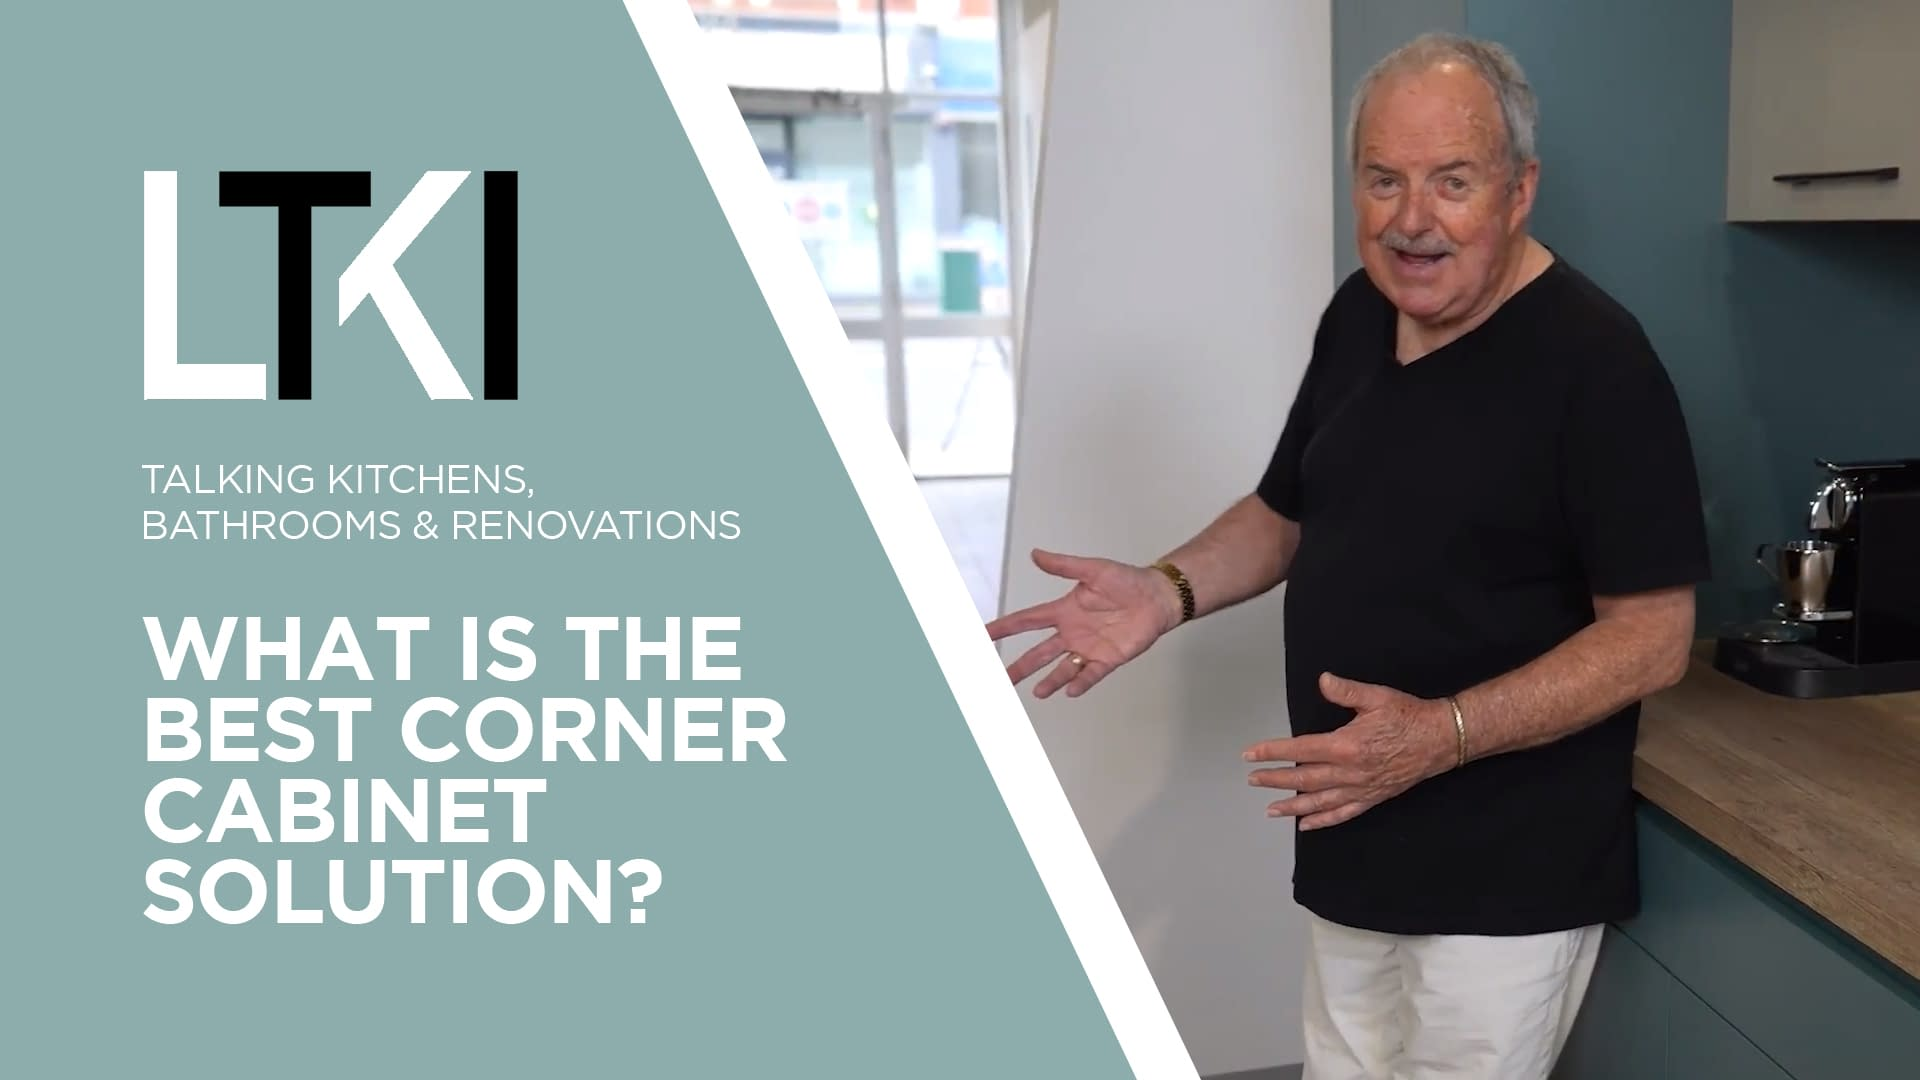 Talking Kitchens, Bathrooms & Renovations: What Is The Best Corner Cabinet Solution?